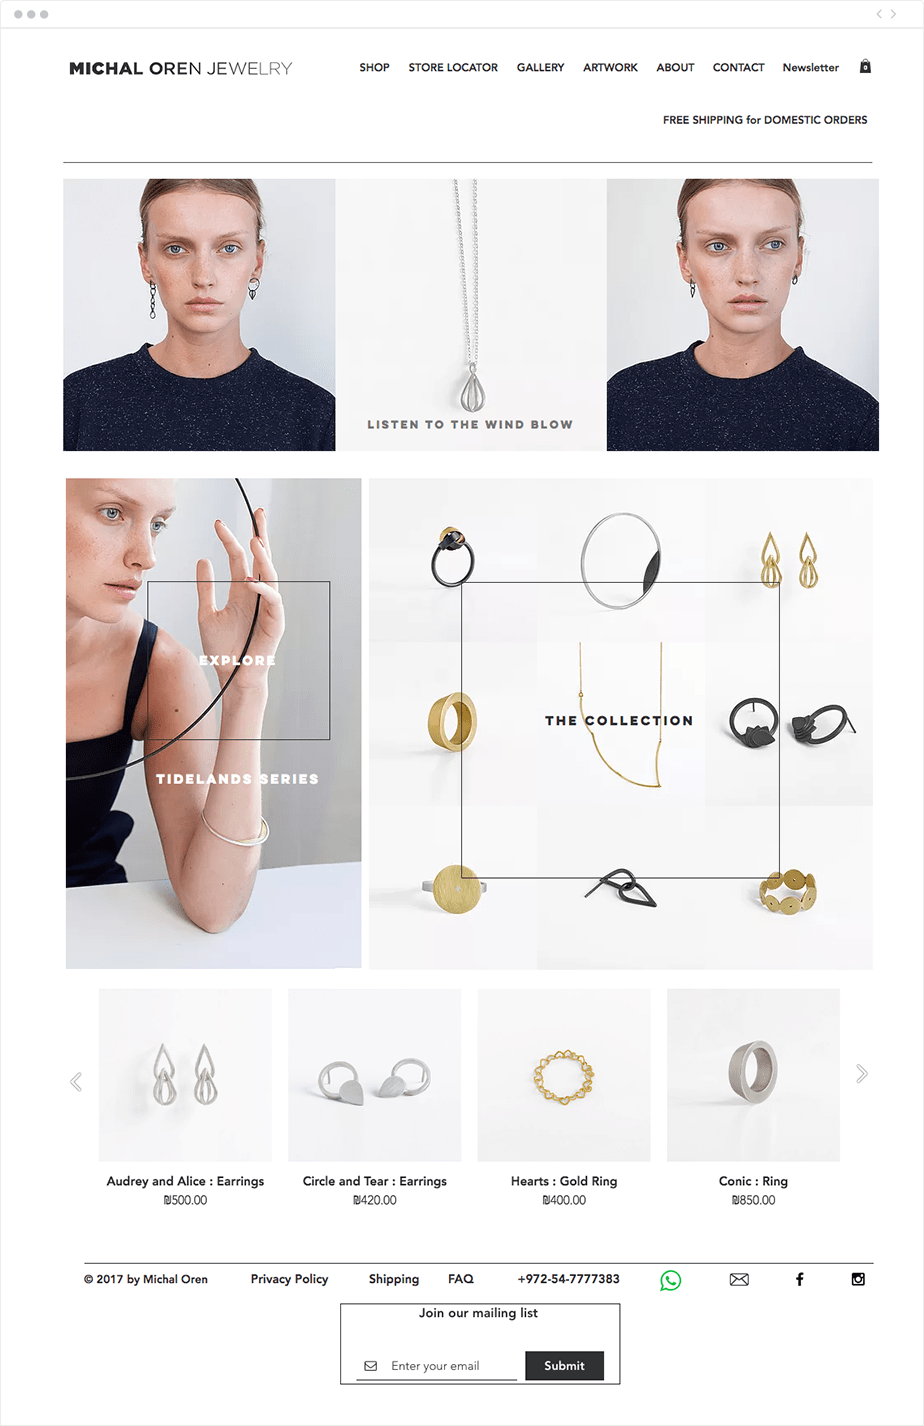 Michal Oren Jewelry